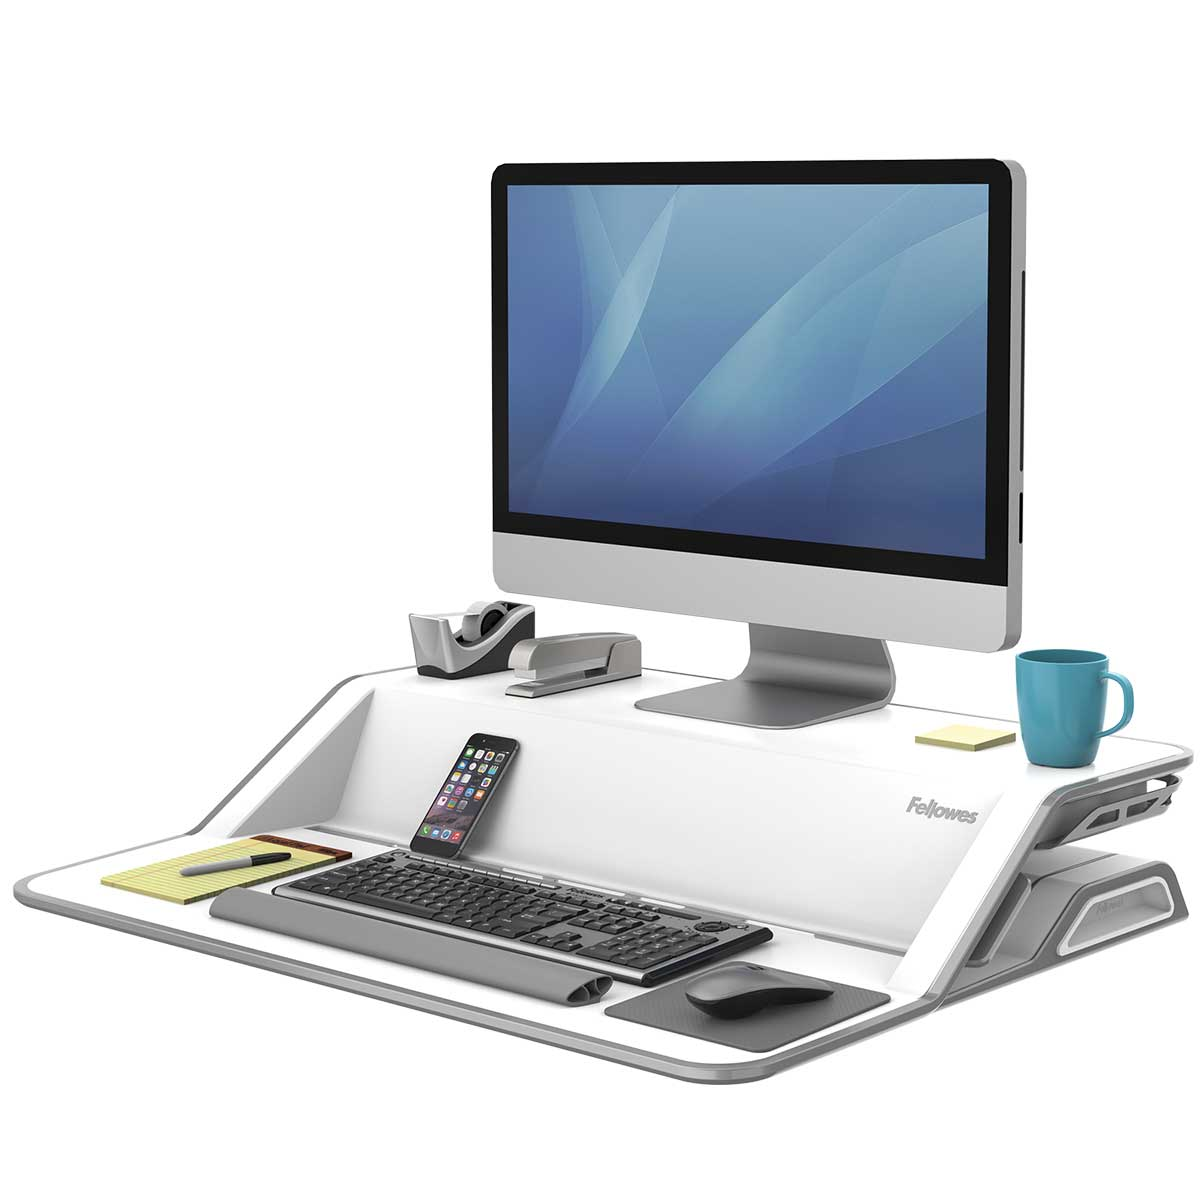 Fellowes 0009901 Lotus Sit Stand Workstation - White